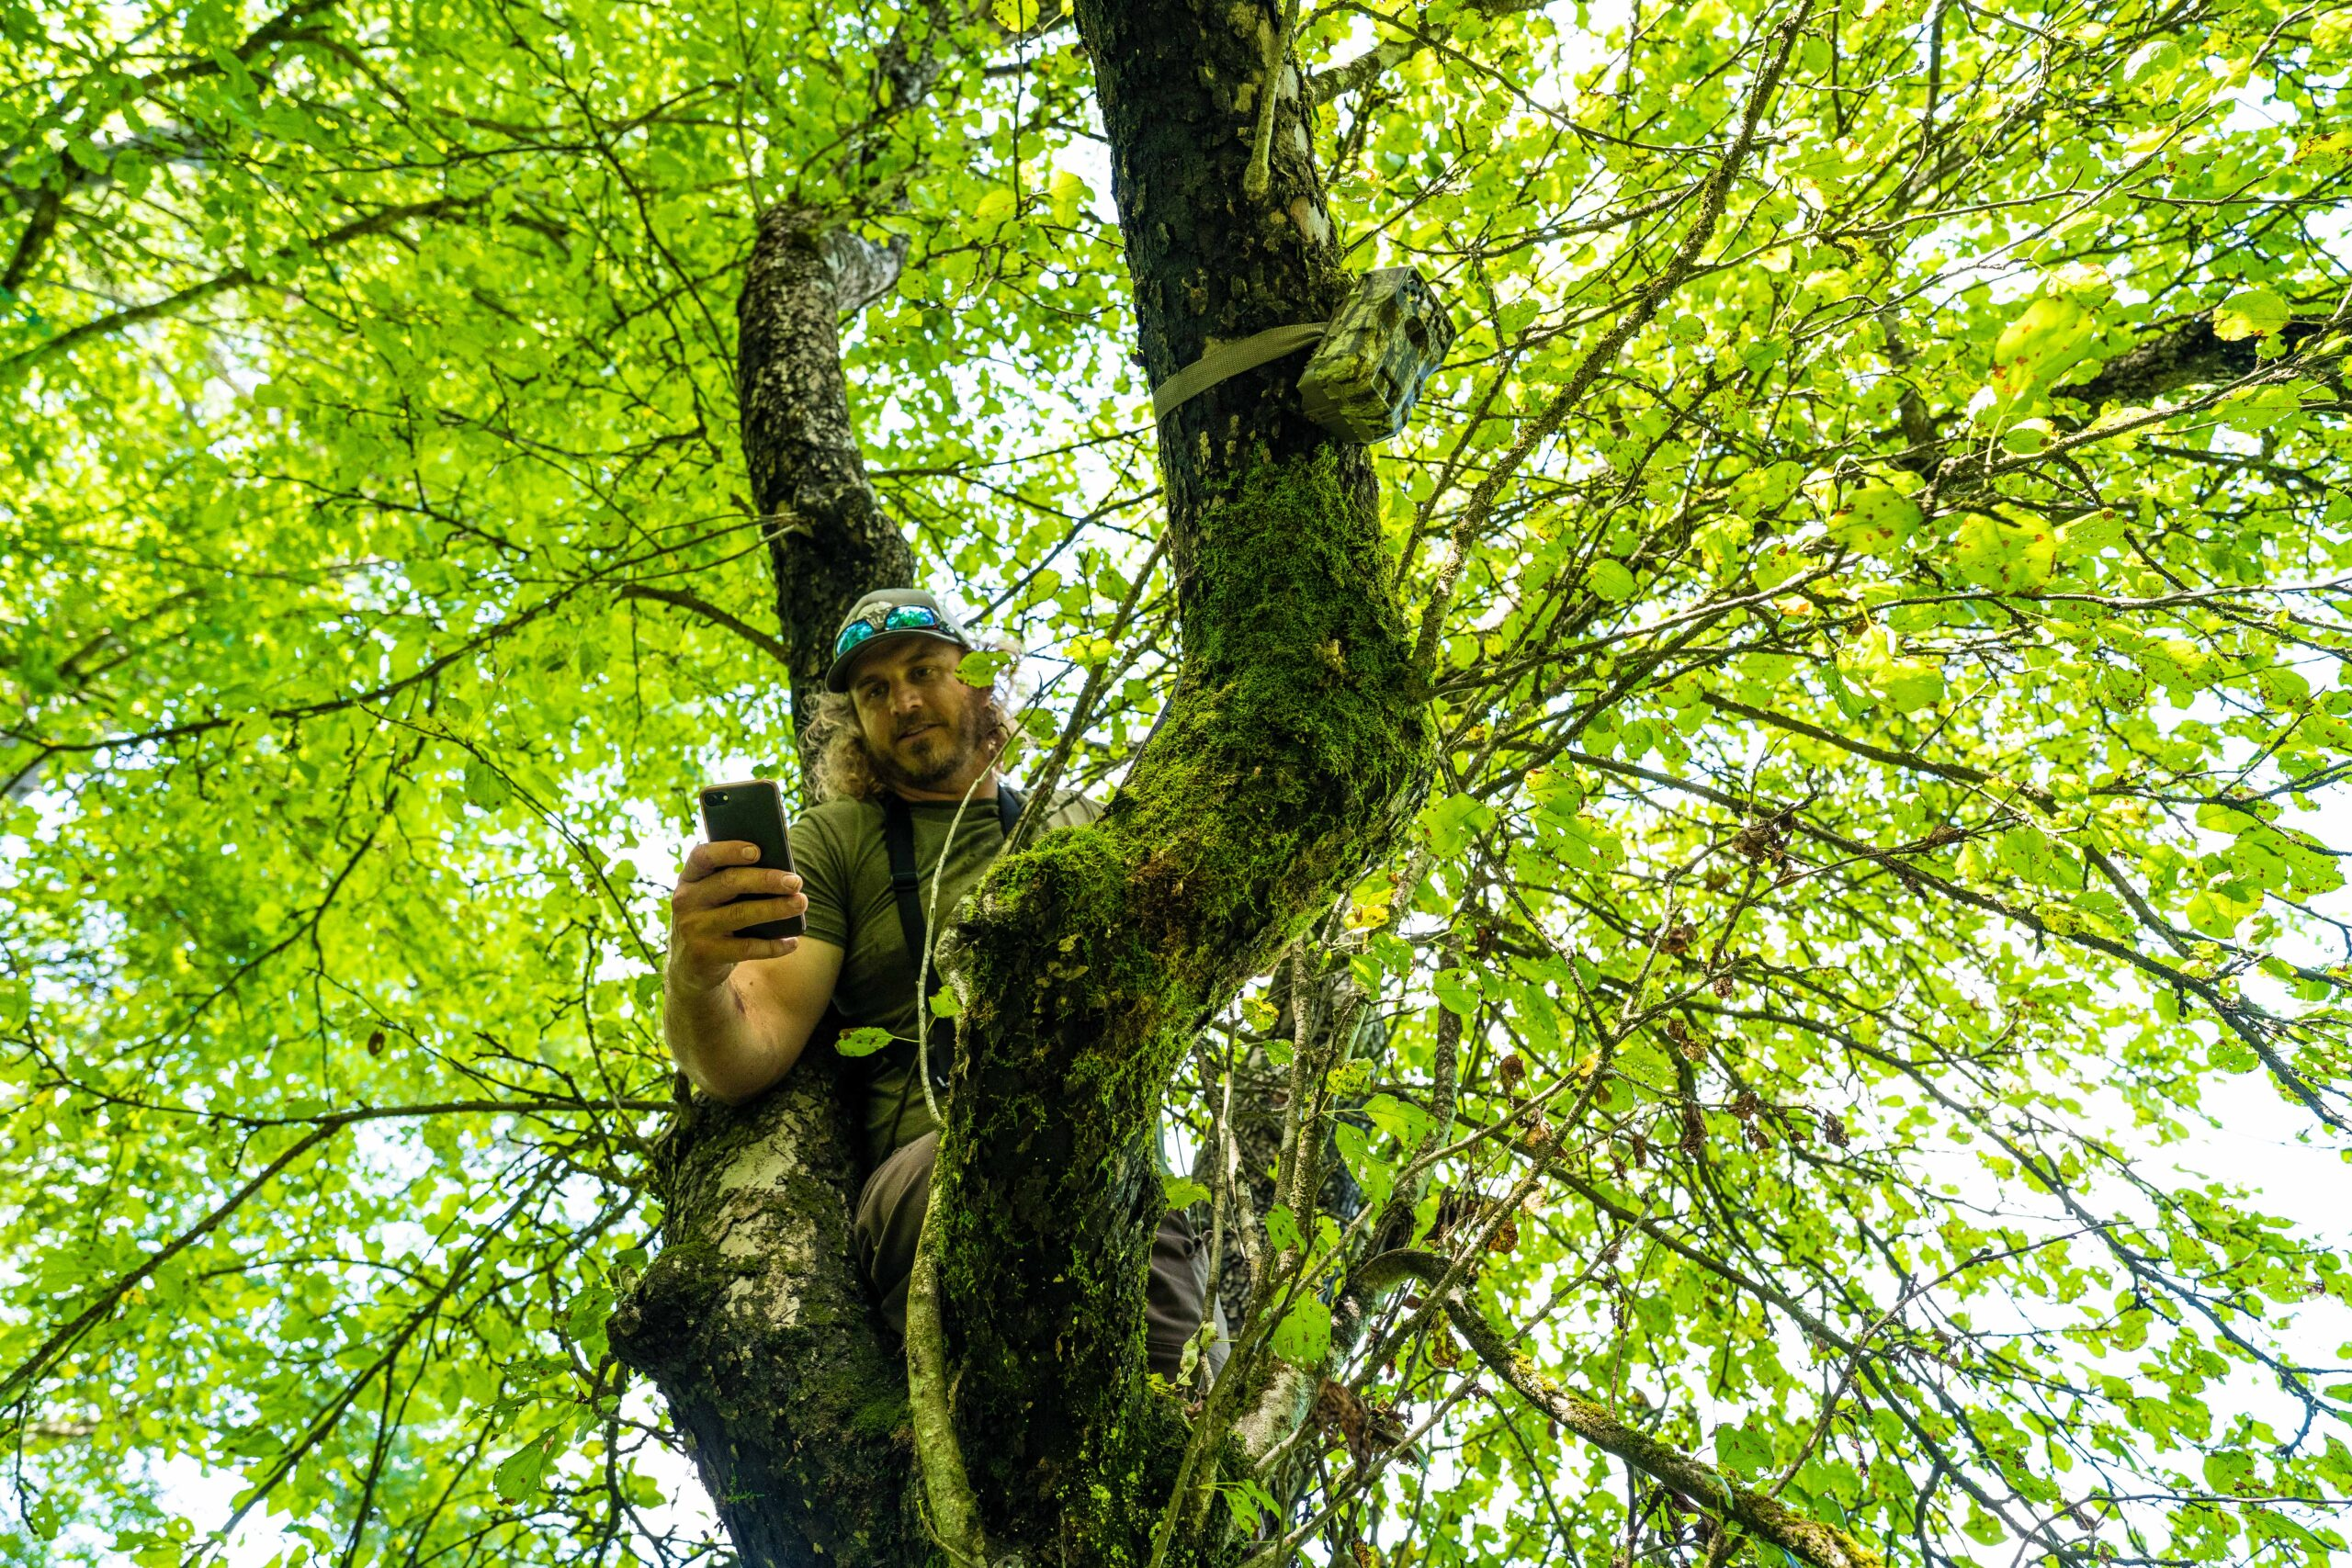 Man In Tree Holding Phone